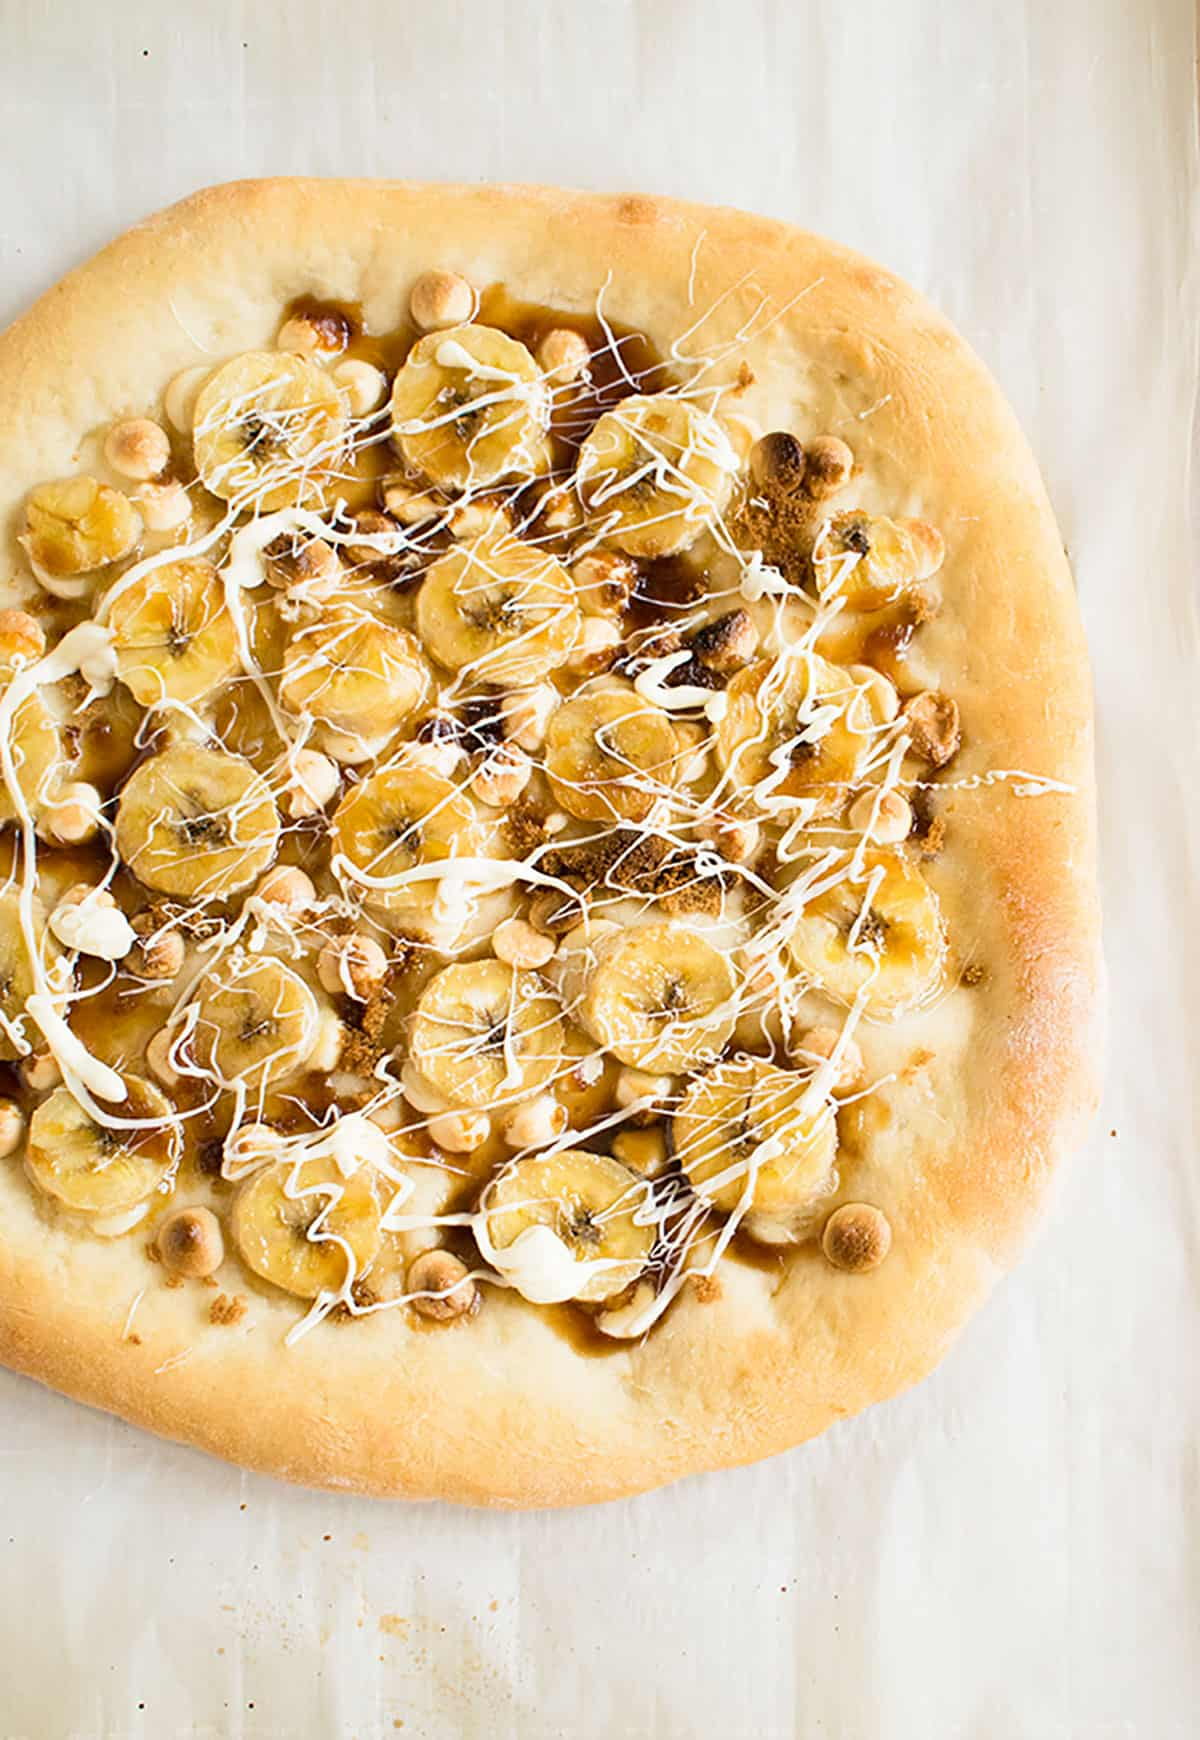 overhead view of banana pizza with white chocolate